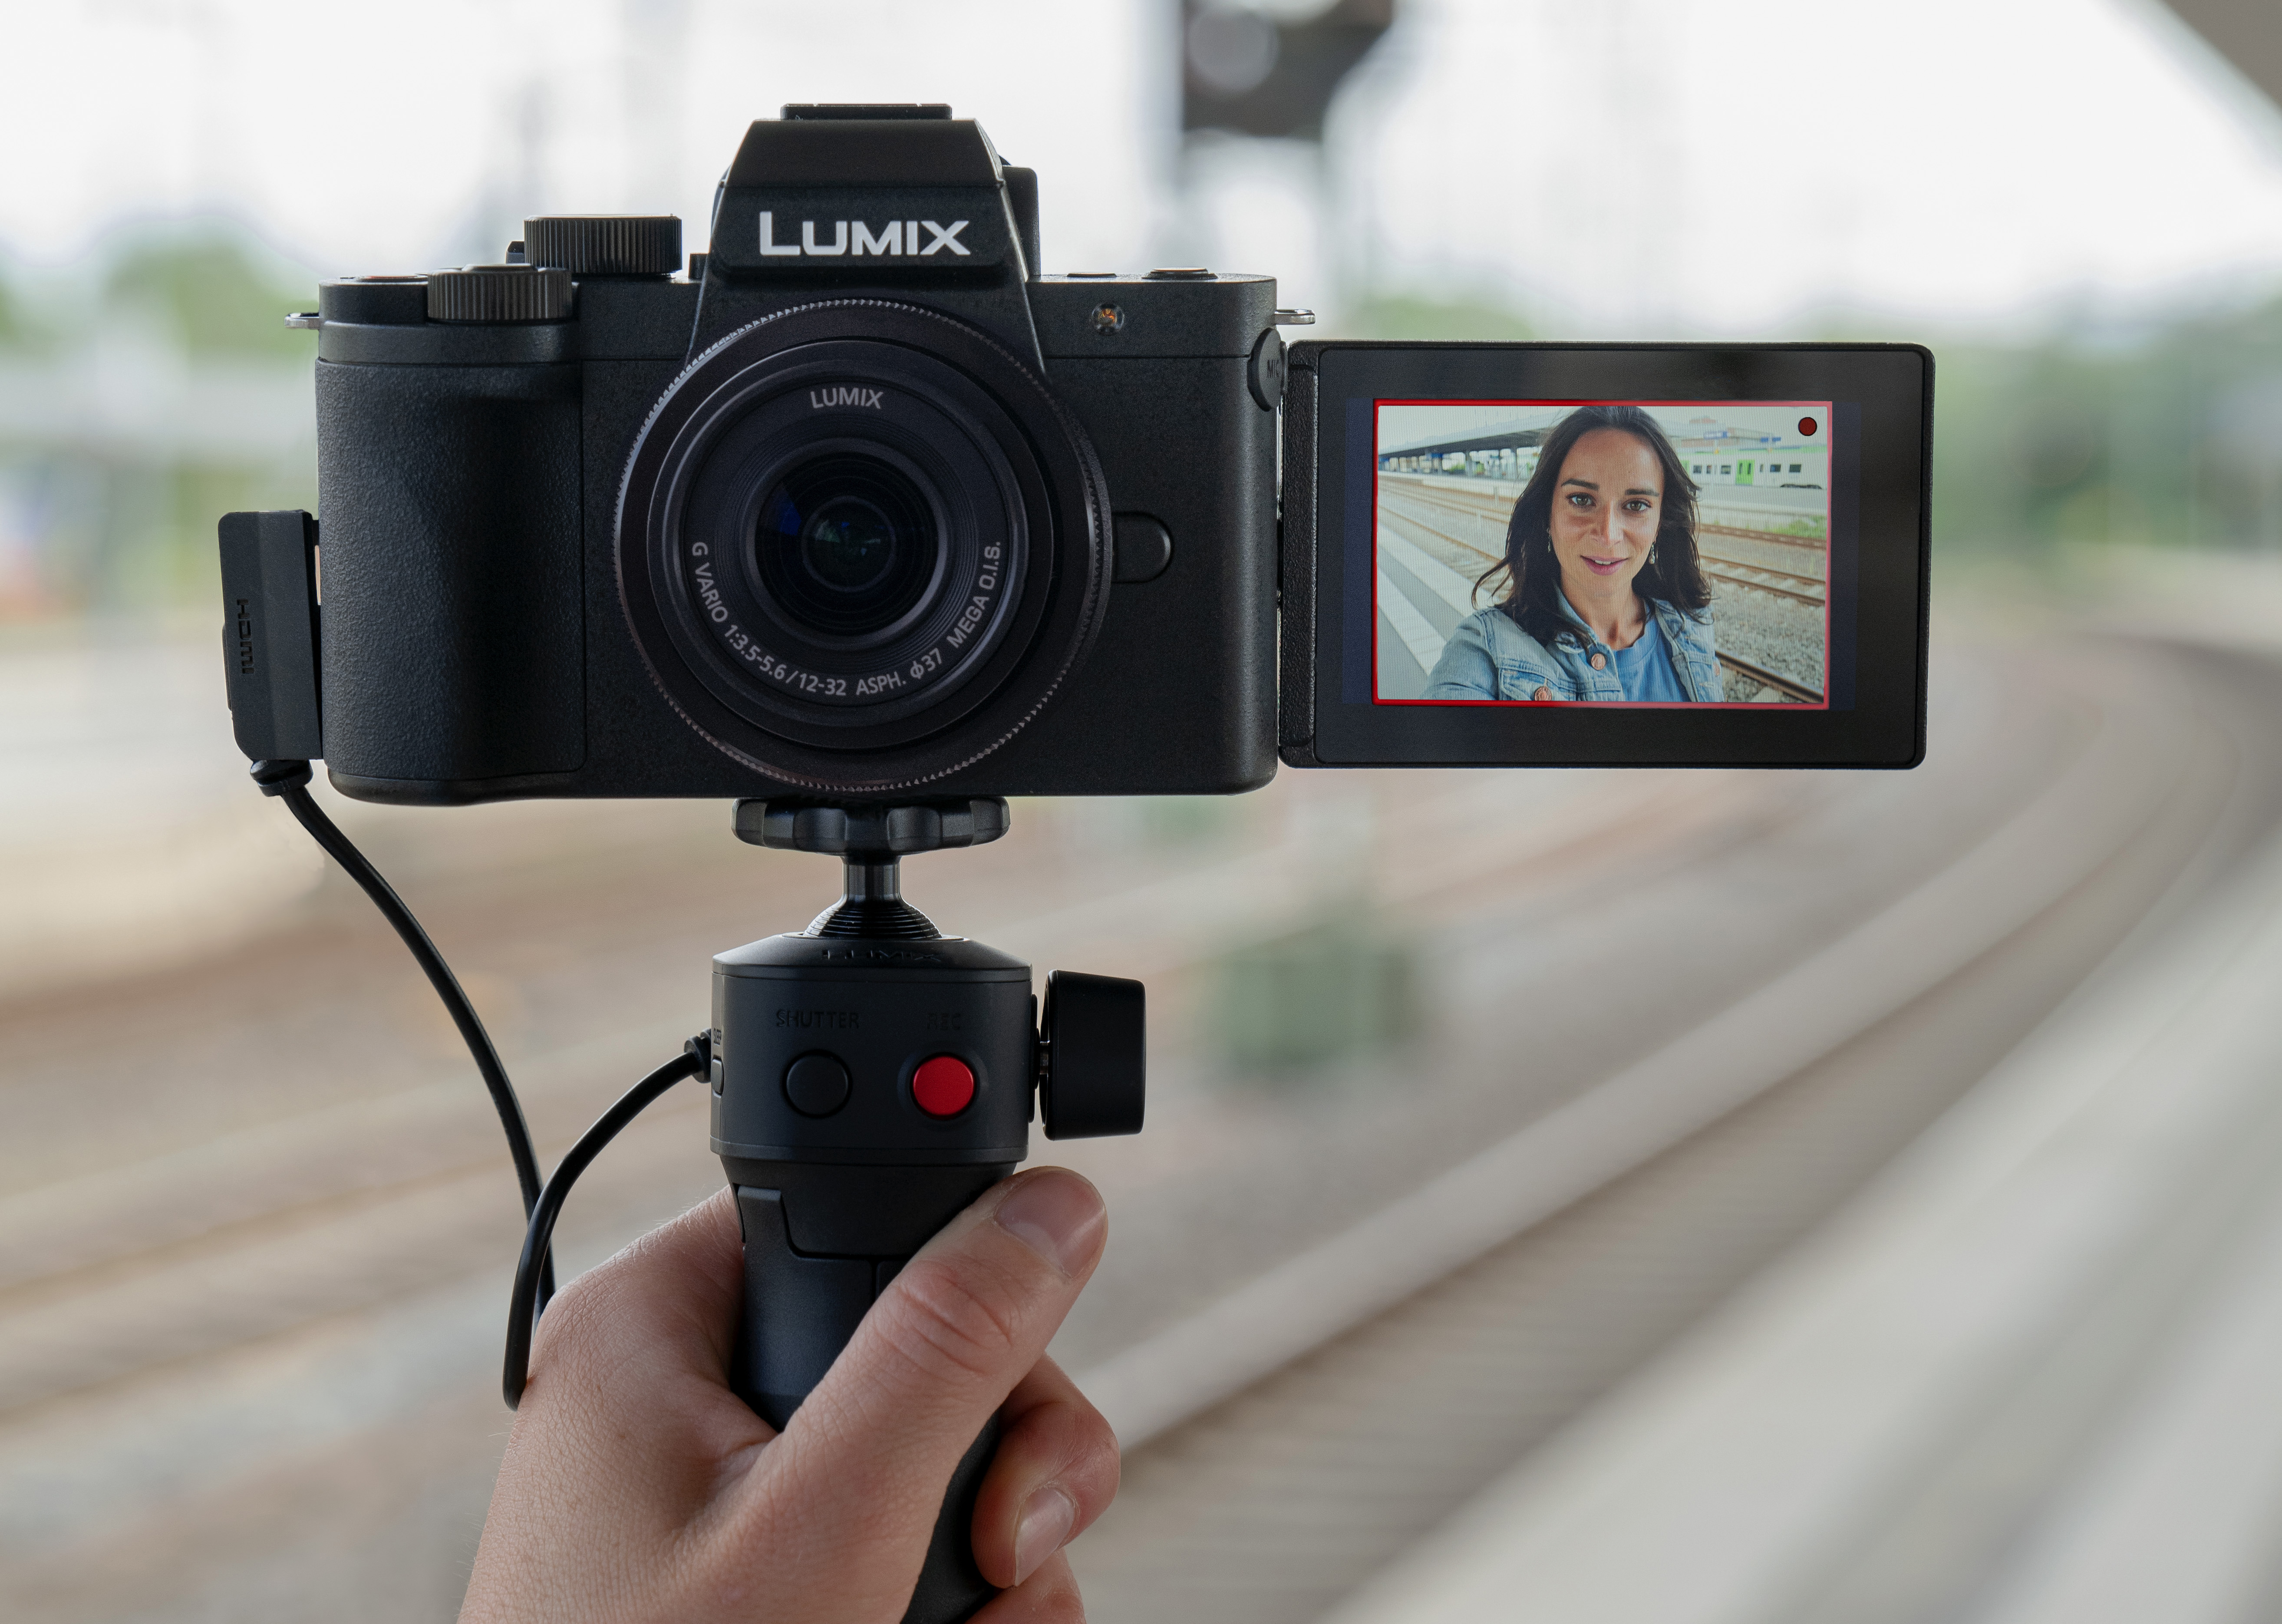 Panasonic's G100 vlogging camera can isolate voices using face tracking